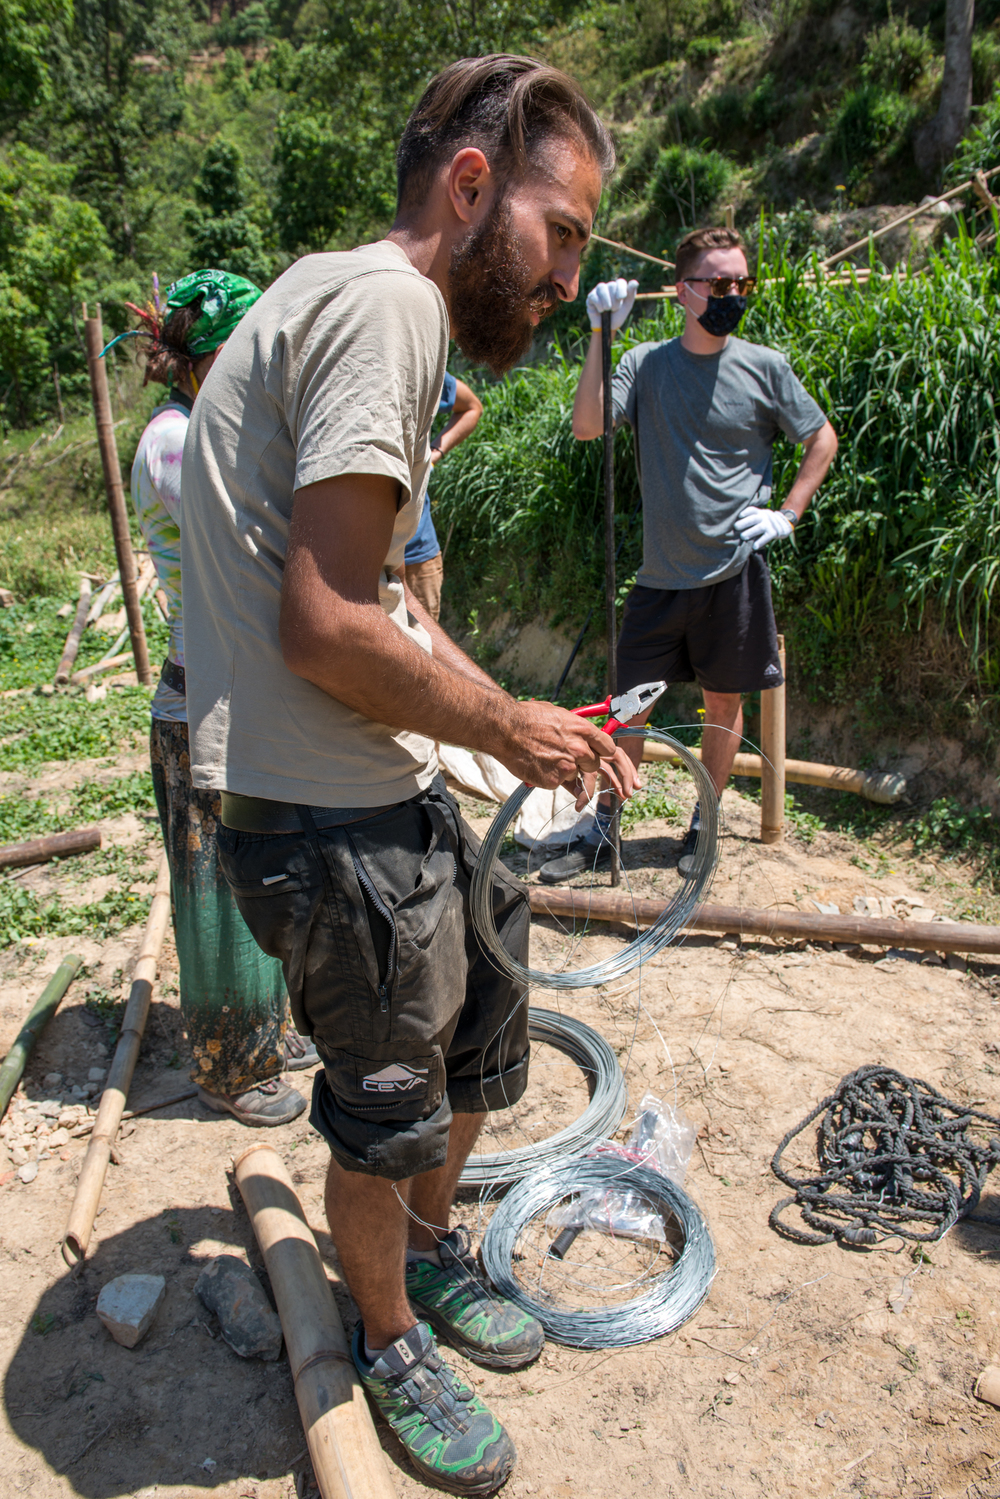 James organizes the wires used for building the bamboo shelters.